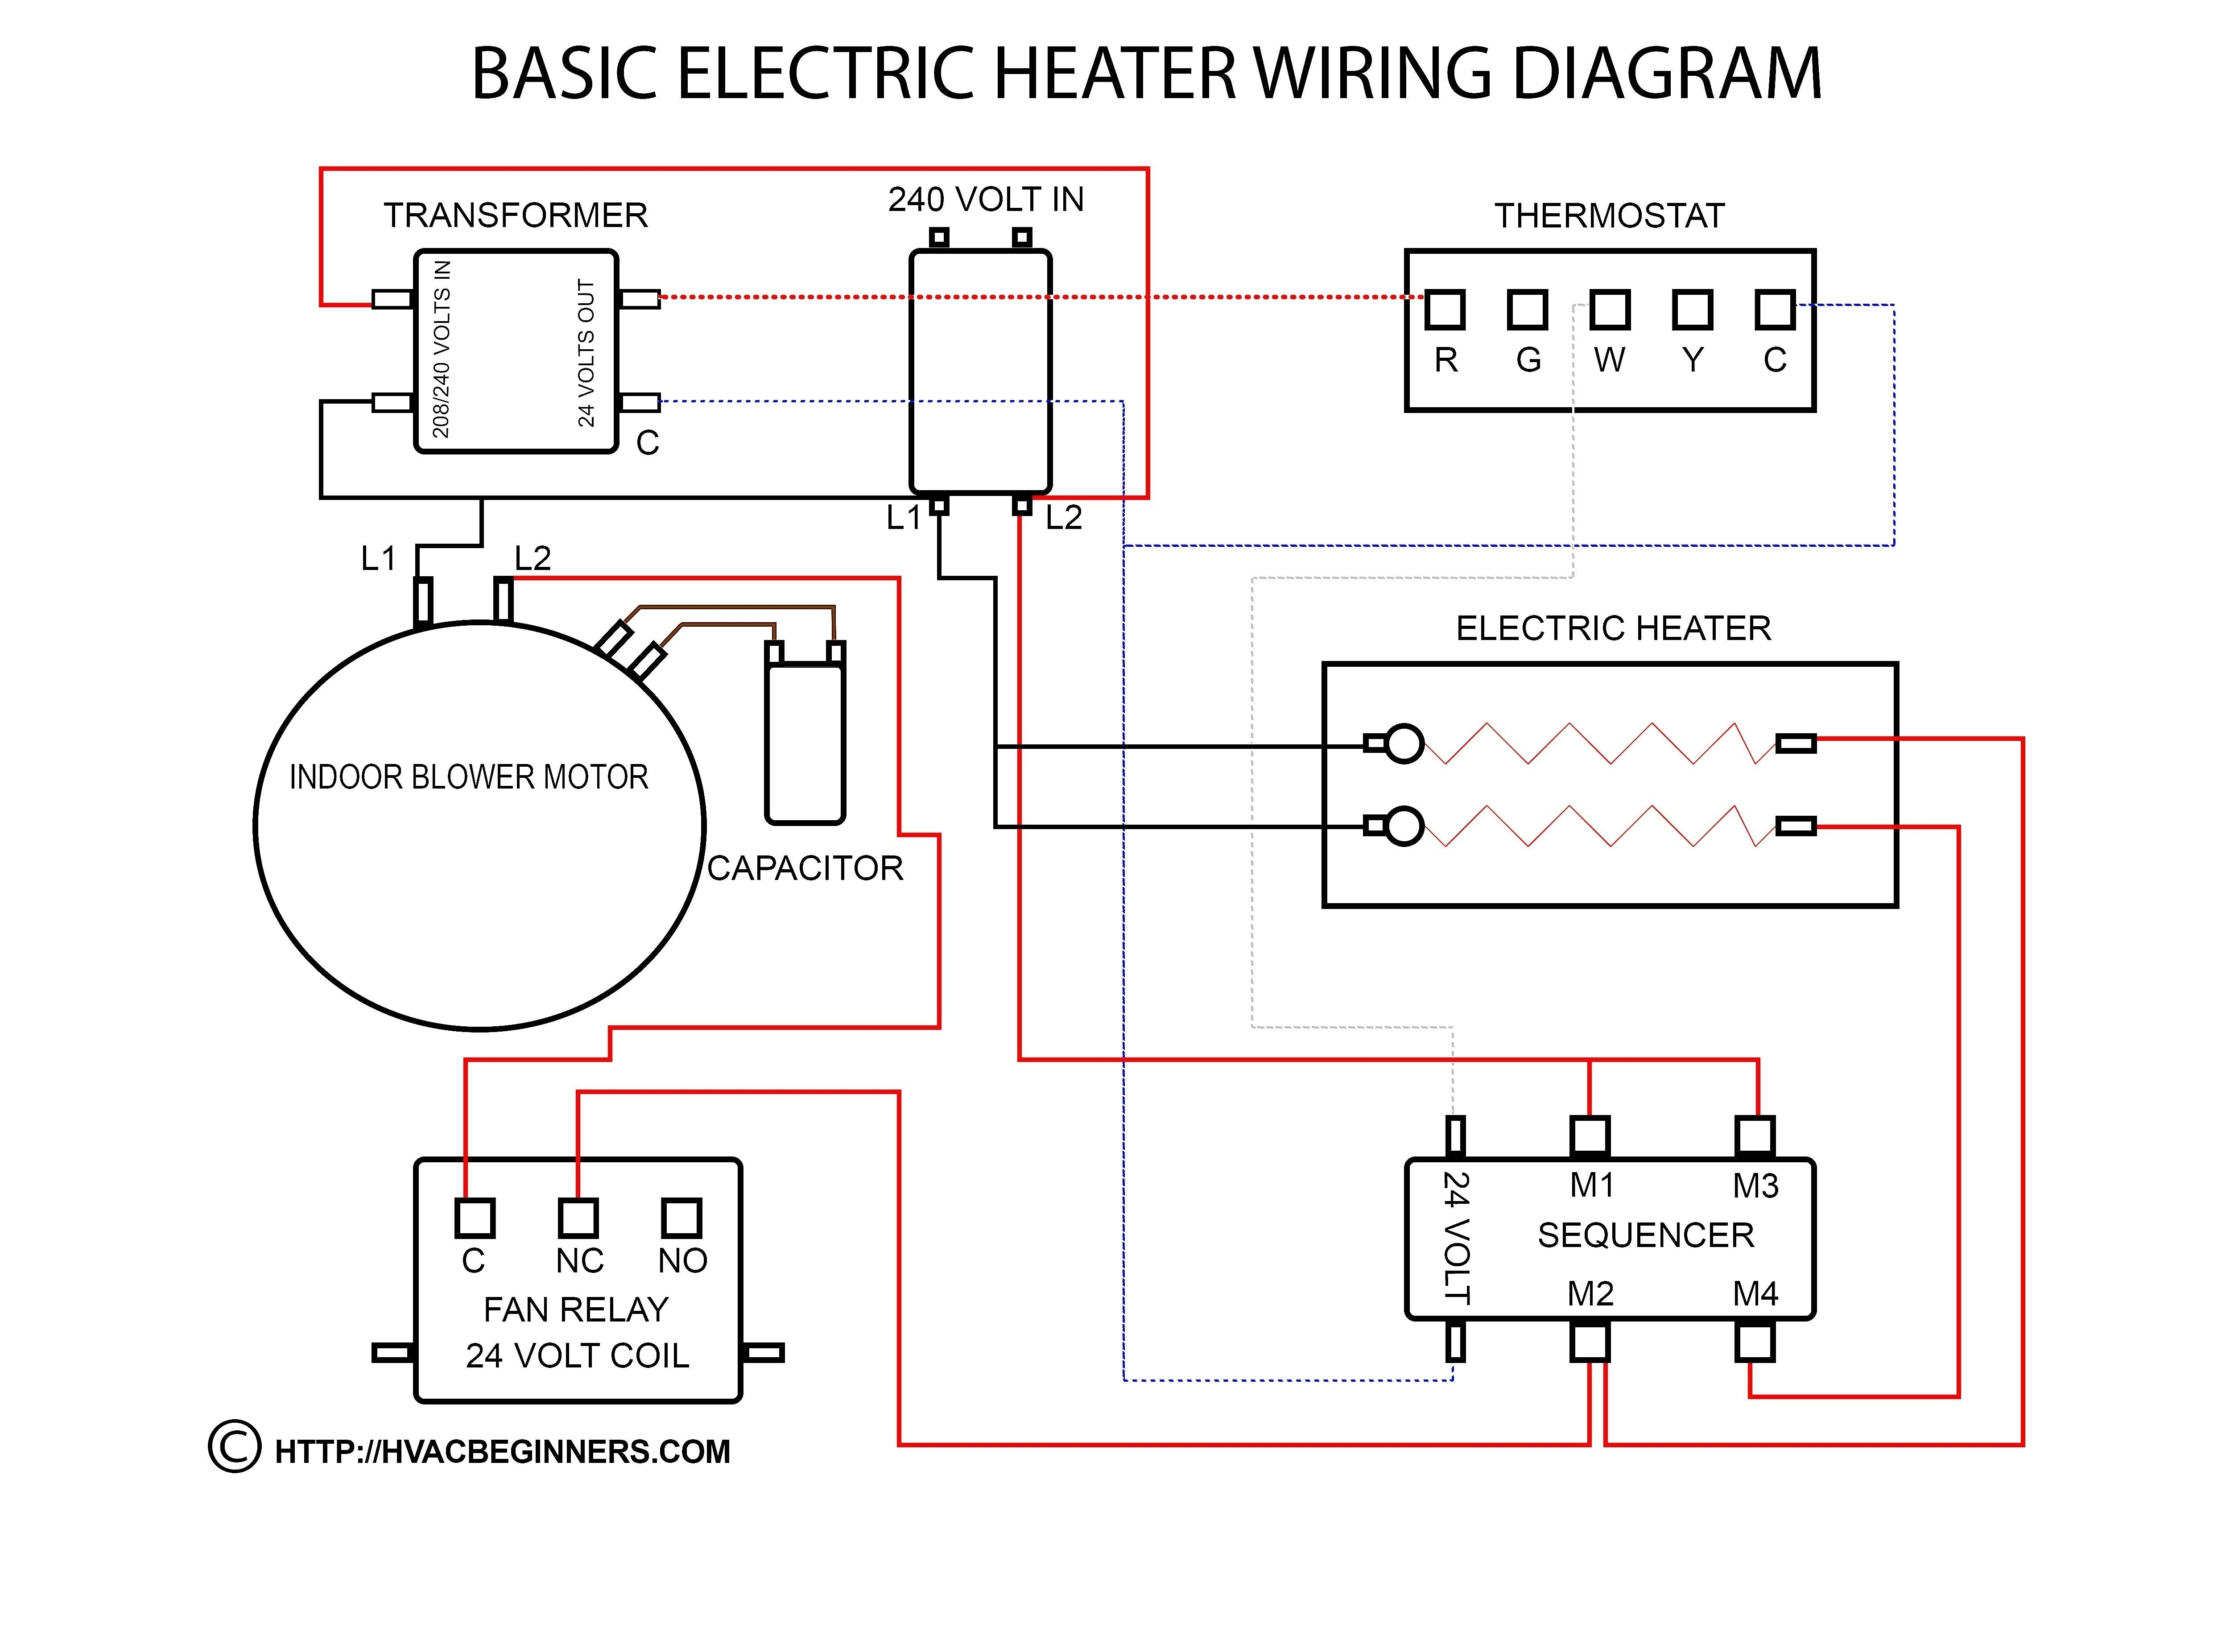 24 volt transformer wiring diagram Download-Hvac Transformer Wiring Diagram Fresh Home Hvac Wiring Diagram Valid Wiring Diagram Hvac Save Hvac Wiring 16-c